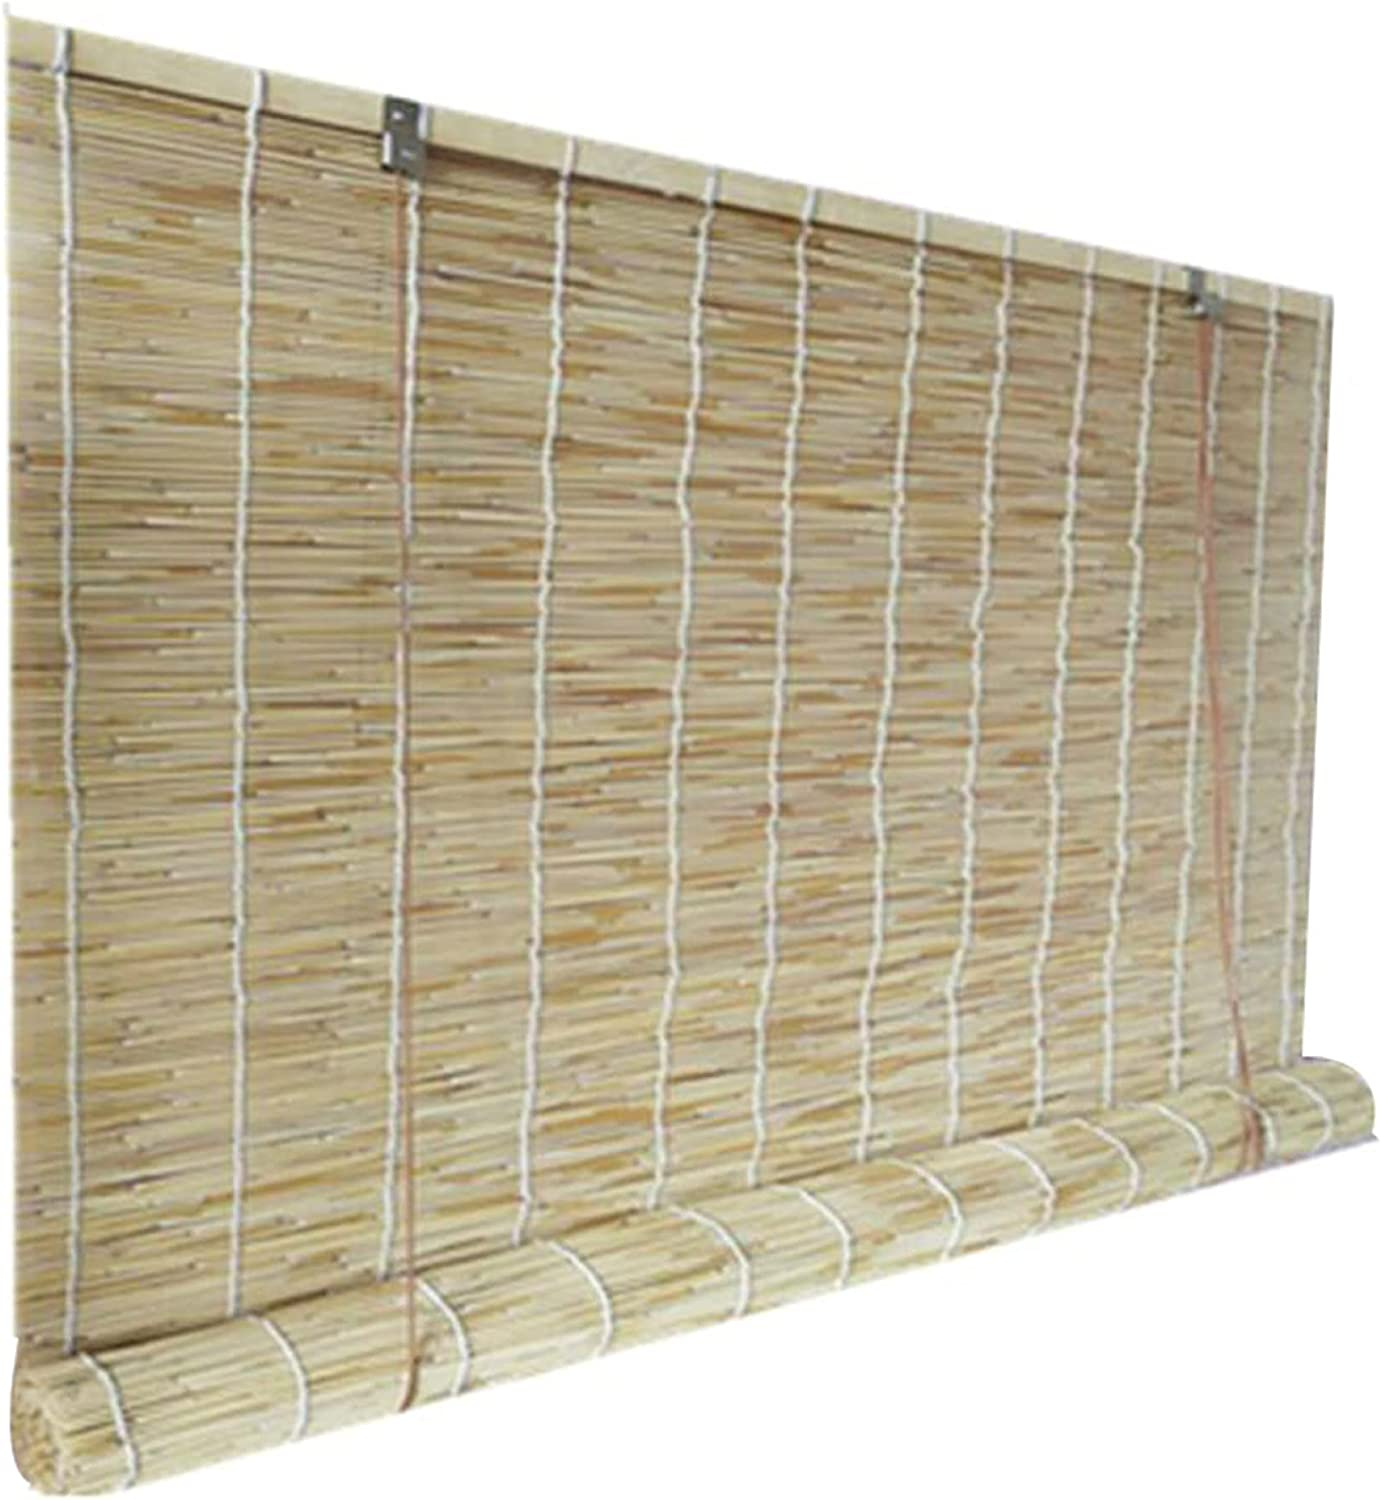 Natural Reed Curtain Partition Privacy Daily Latest item bargain sale Straw Blind Old